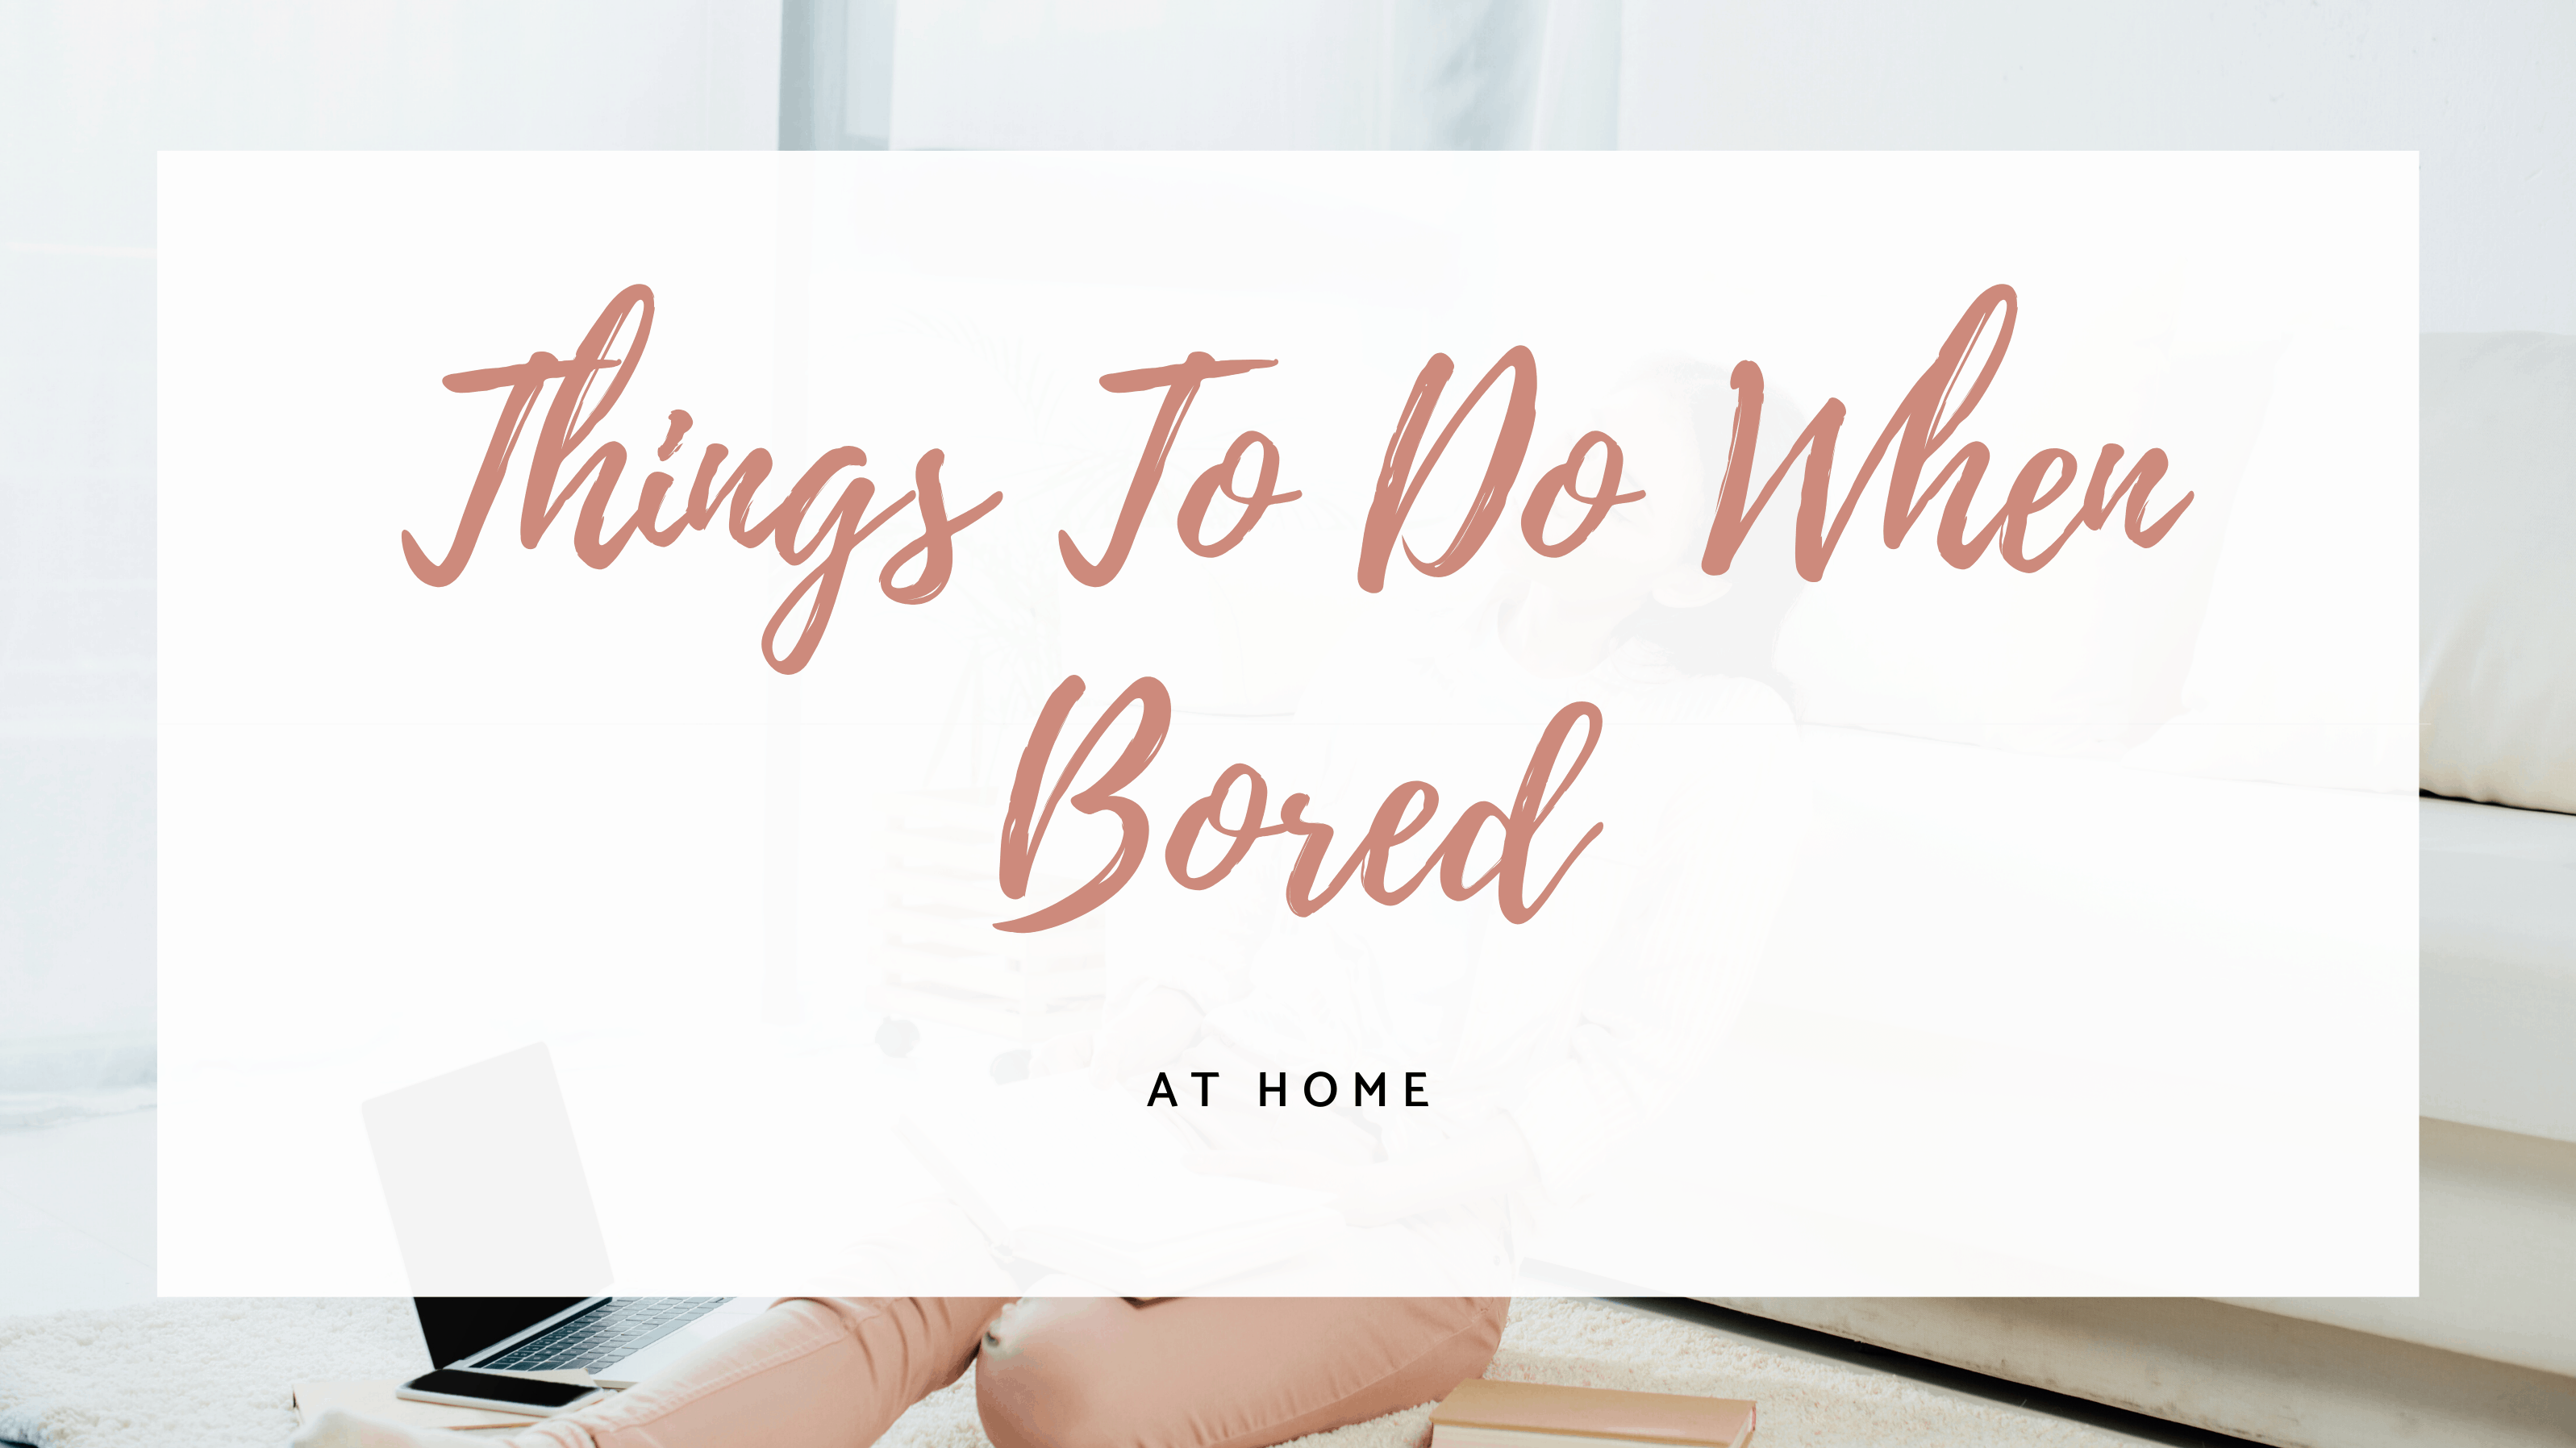 - things to do when bored